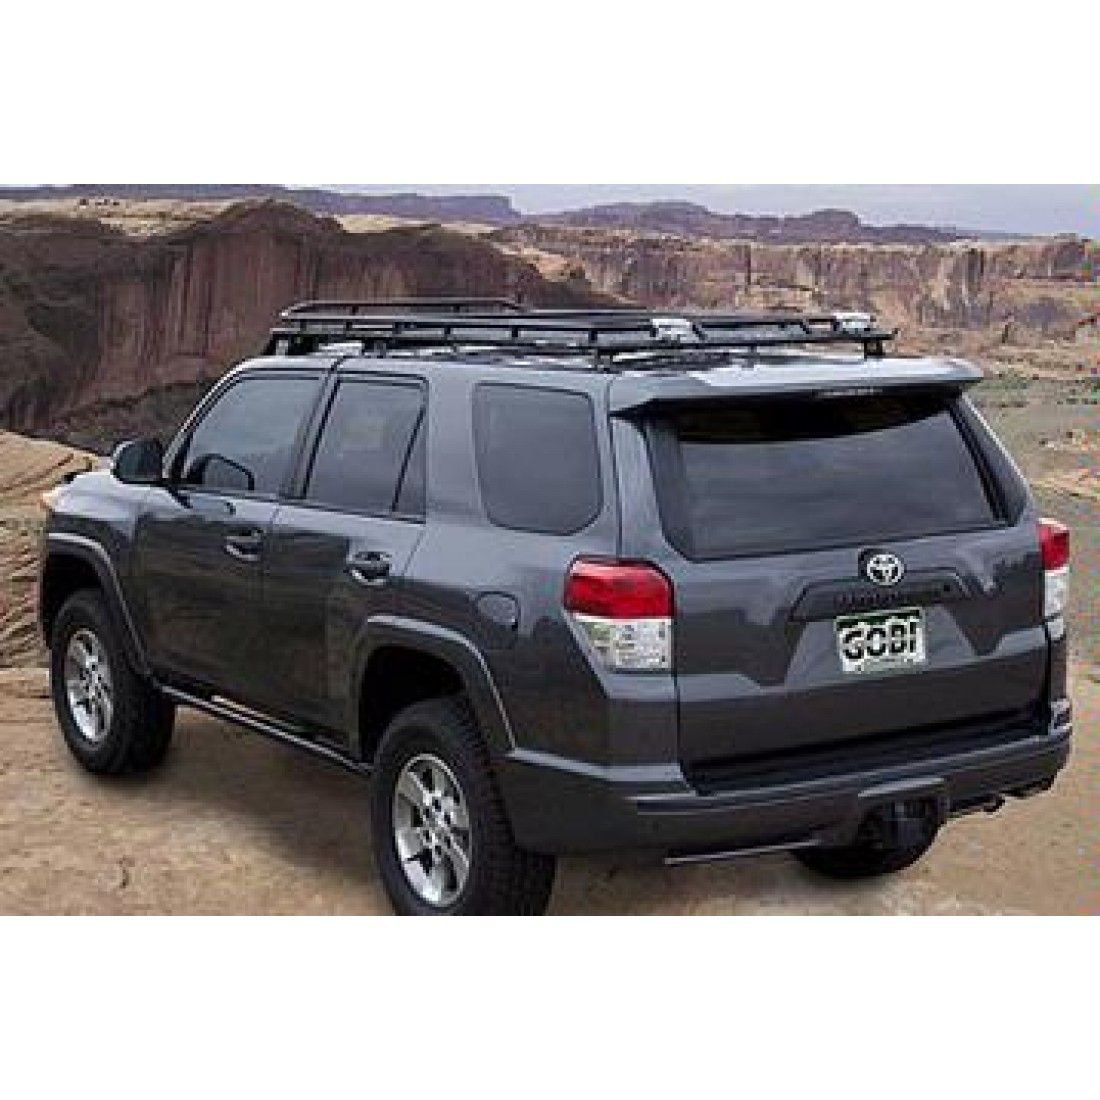 GOBI Toyota 4Runner Roof Rack (With images) Toyota